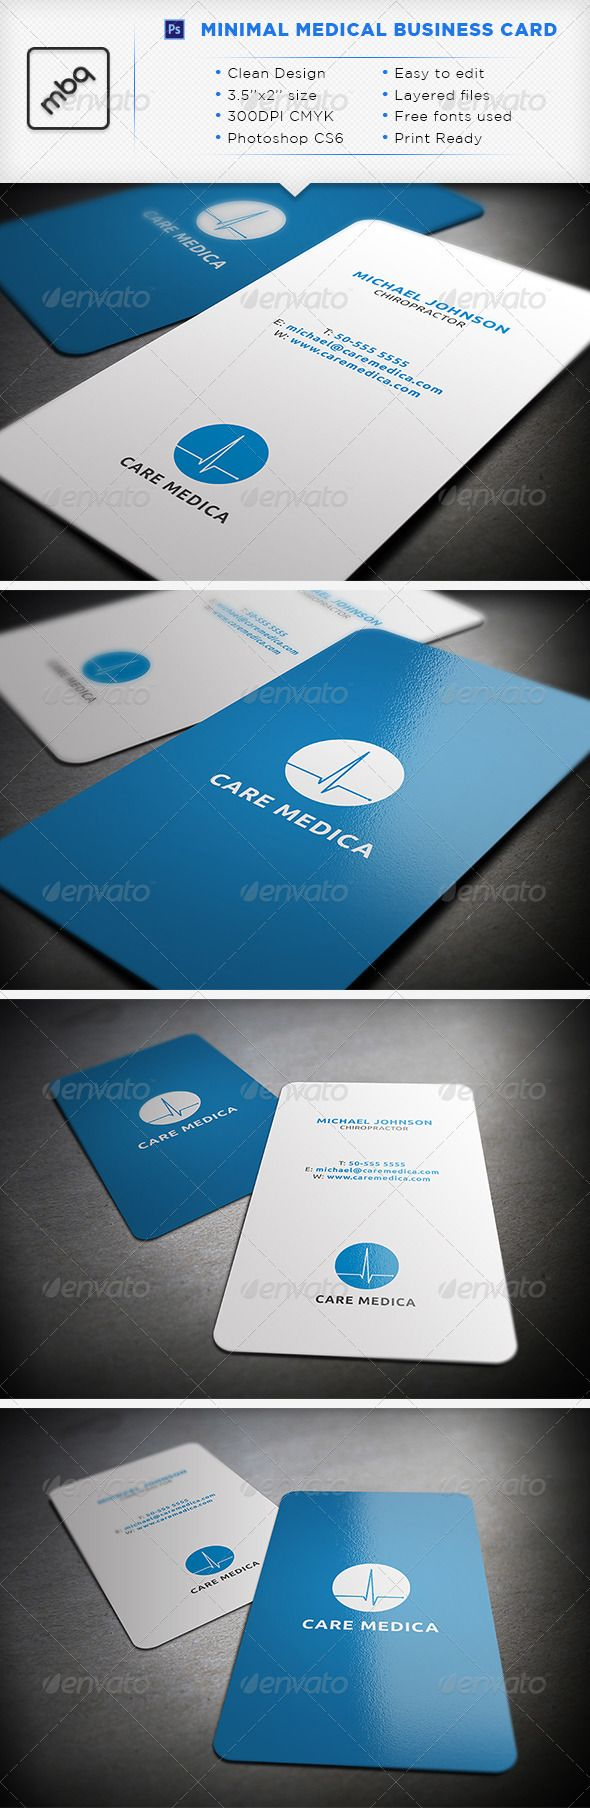 Medic Minimal Medical Business Card – Medical Business Card Templates